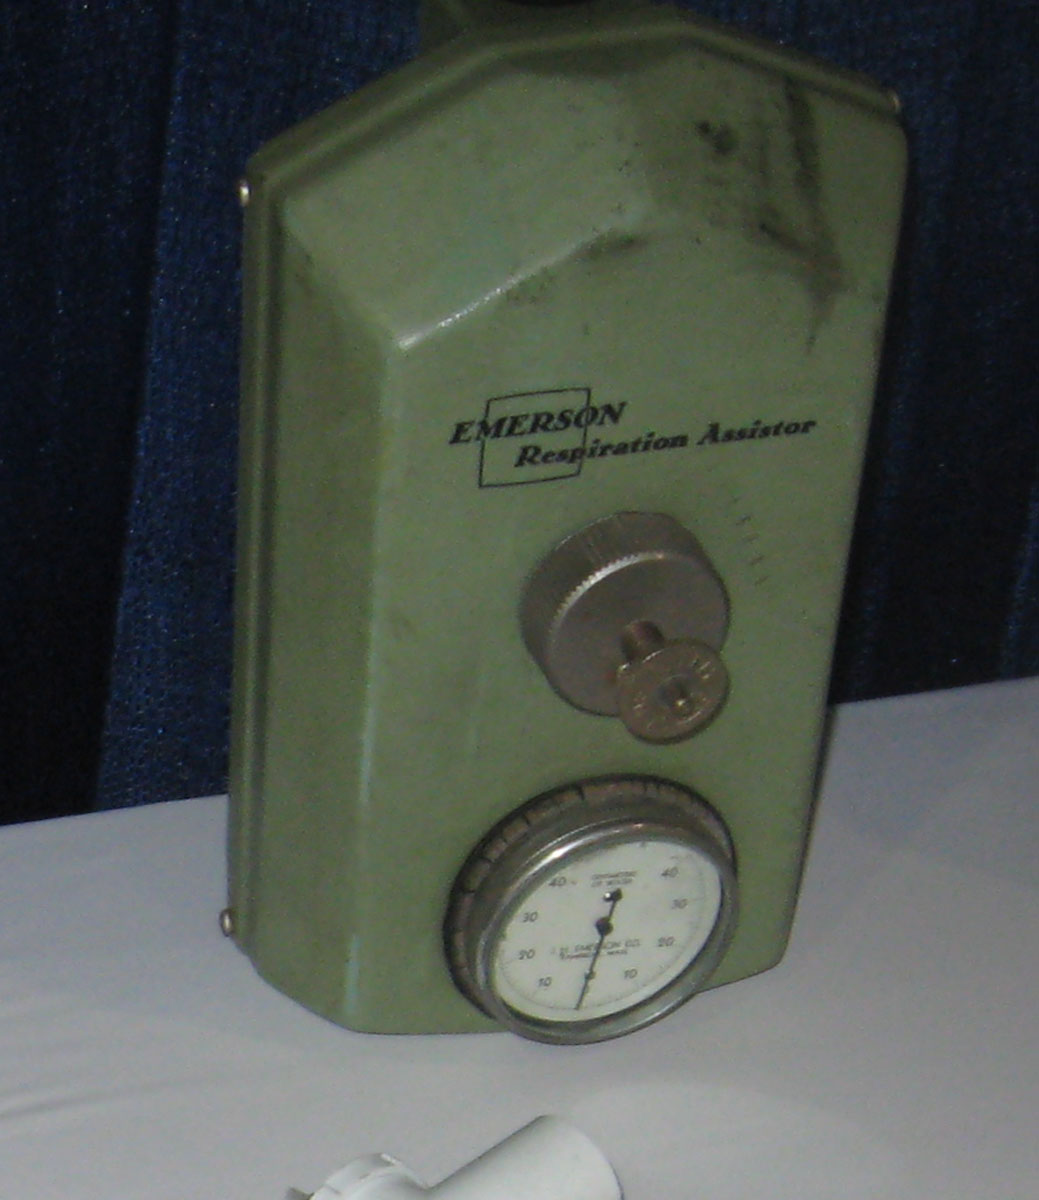 1950s Emerson Respiration Assistor